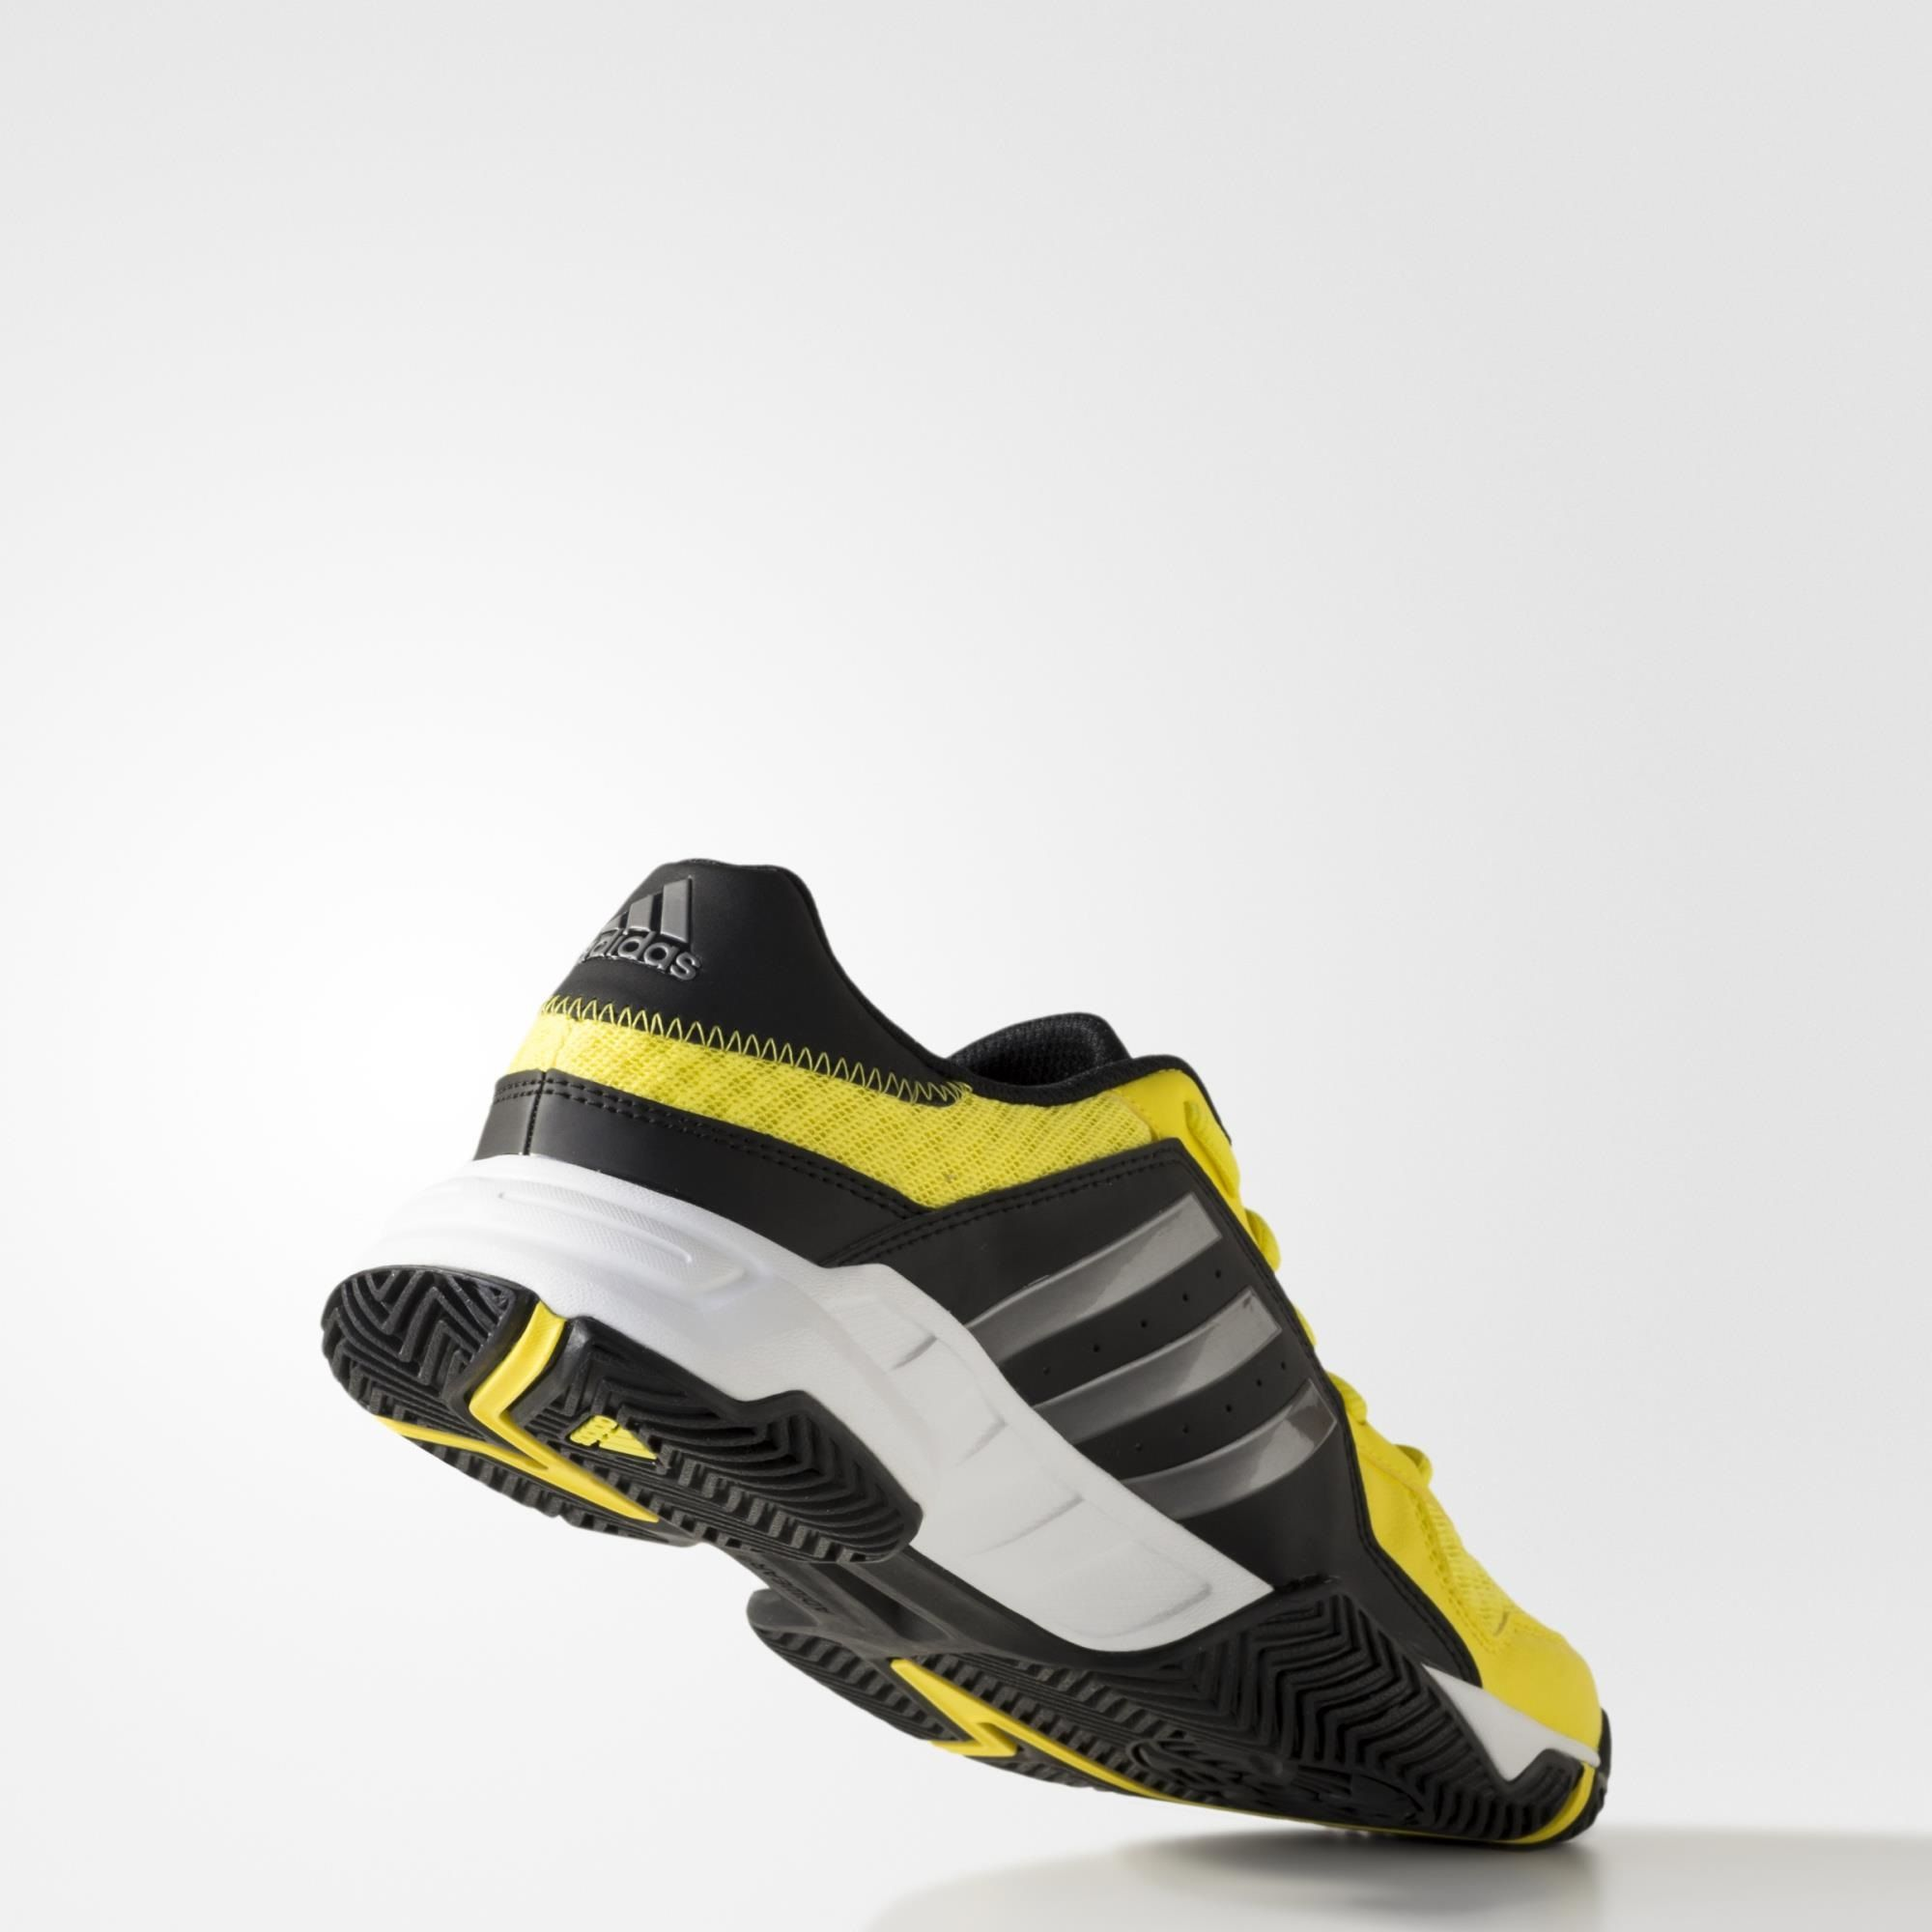 adidas neue schuhe 2013 honda lucasflory photo graphy